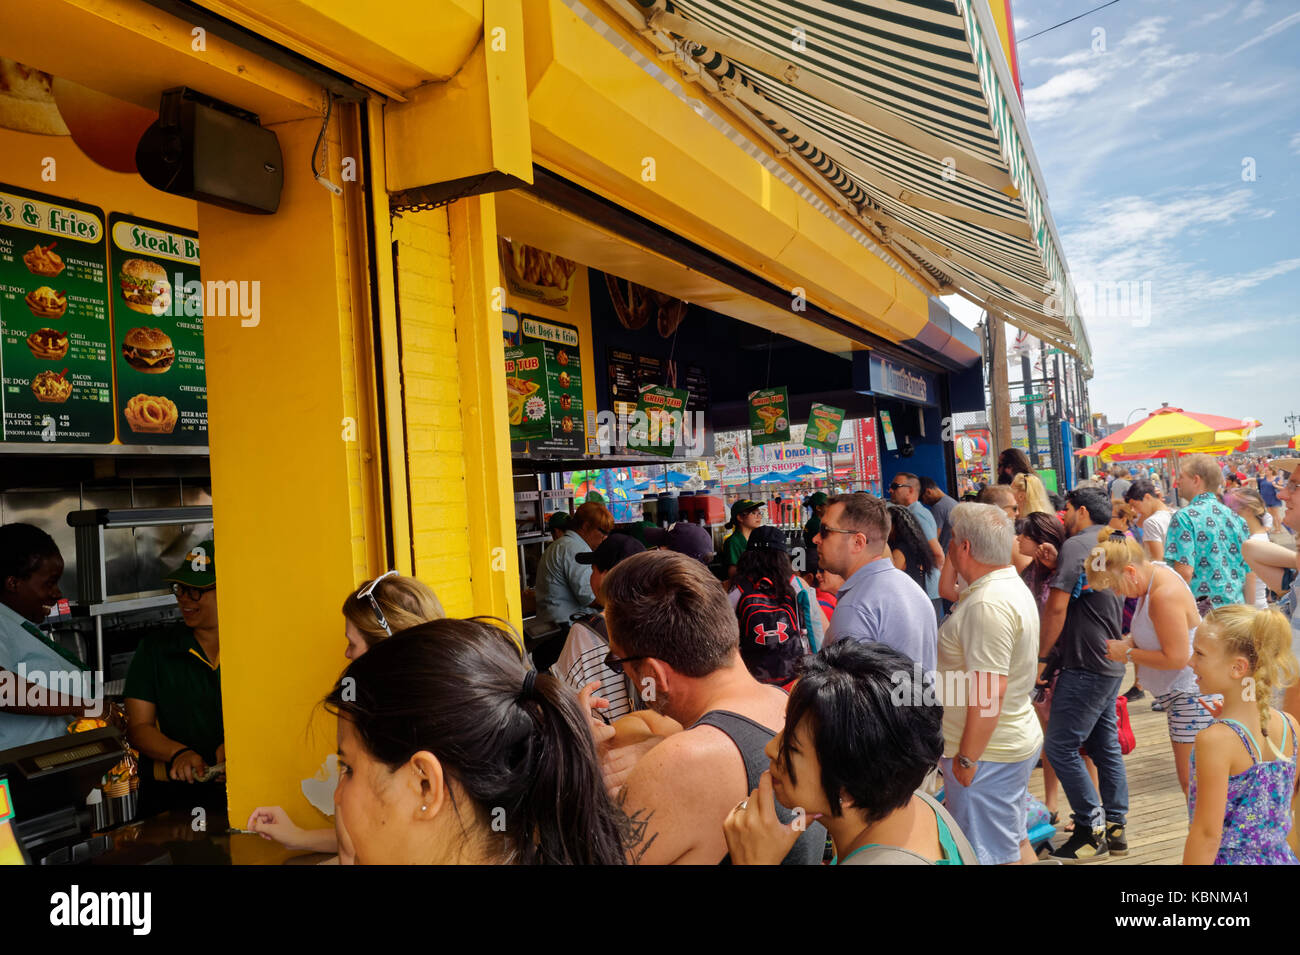 Line of visitors and tourists at Nathan's Famous restaurant on the Coney Island boardwalk. - Stock Image